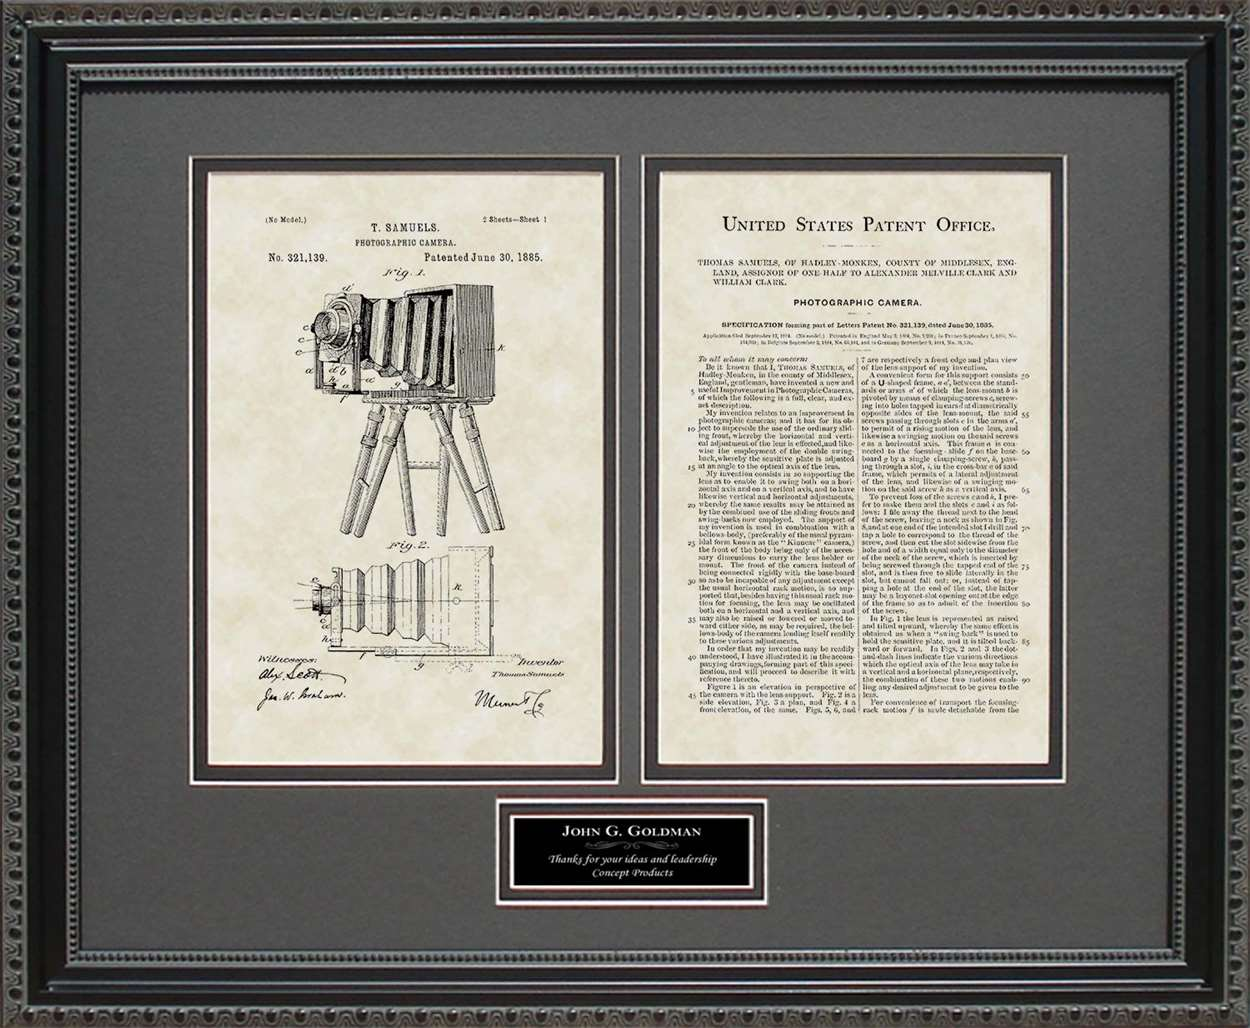 Personalized Early Camera Patent, Art & Copy, Samuels, 1885